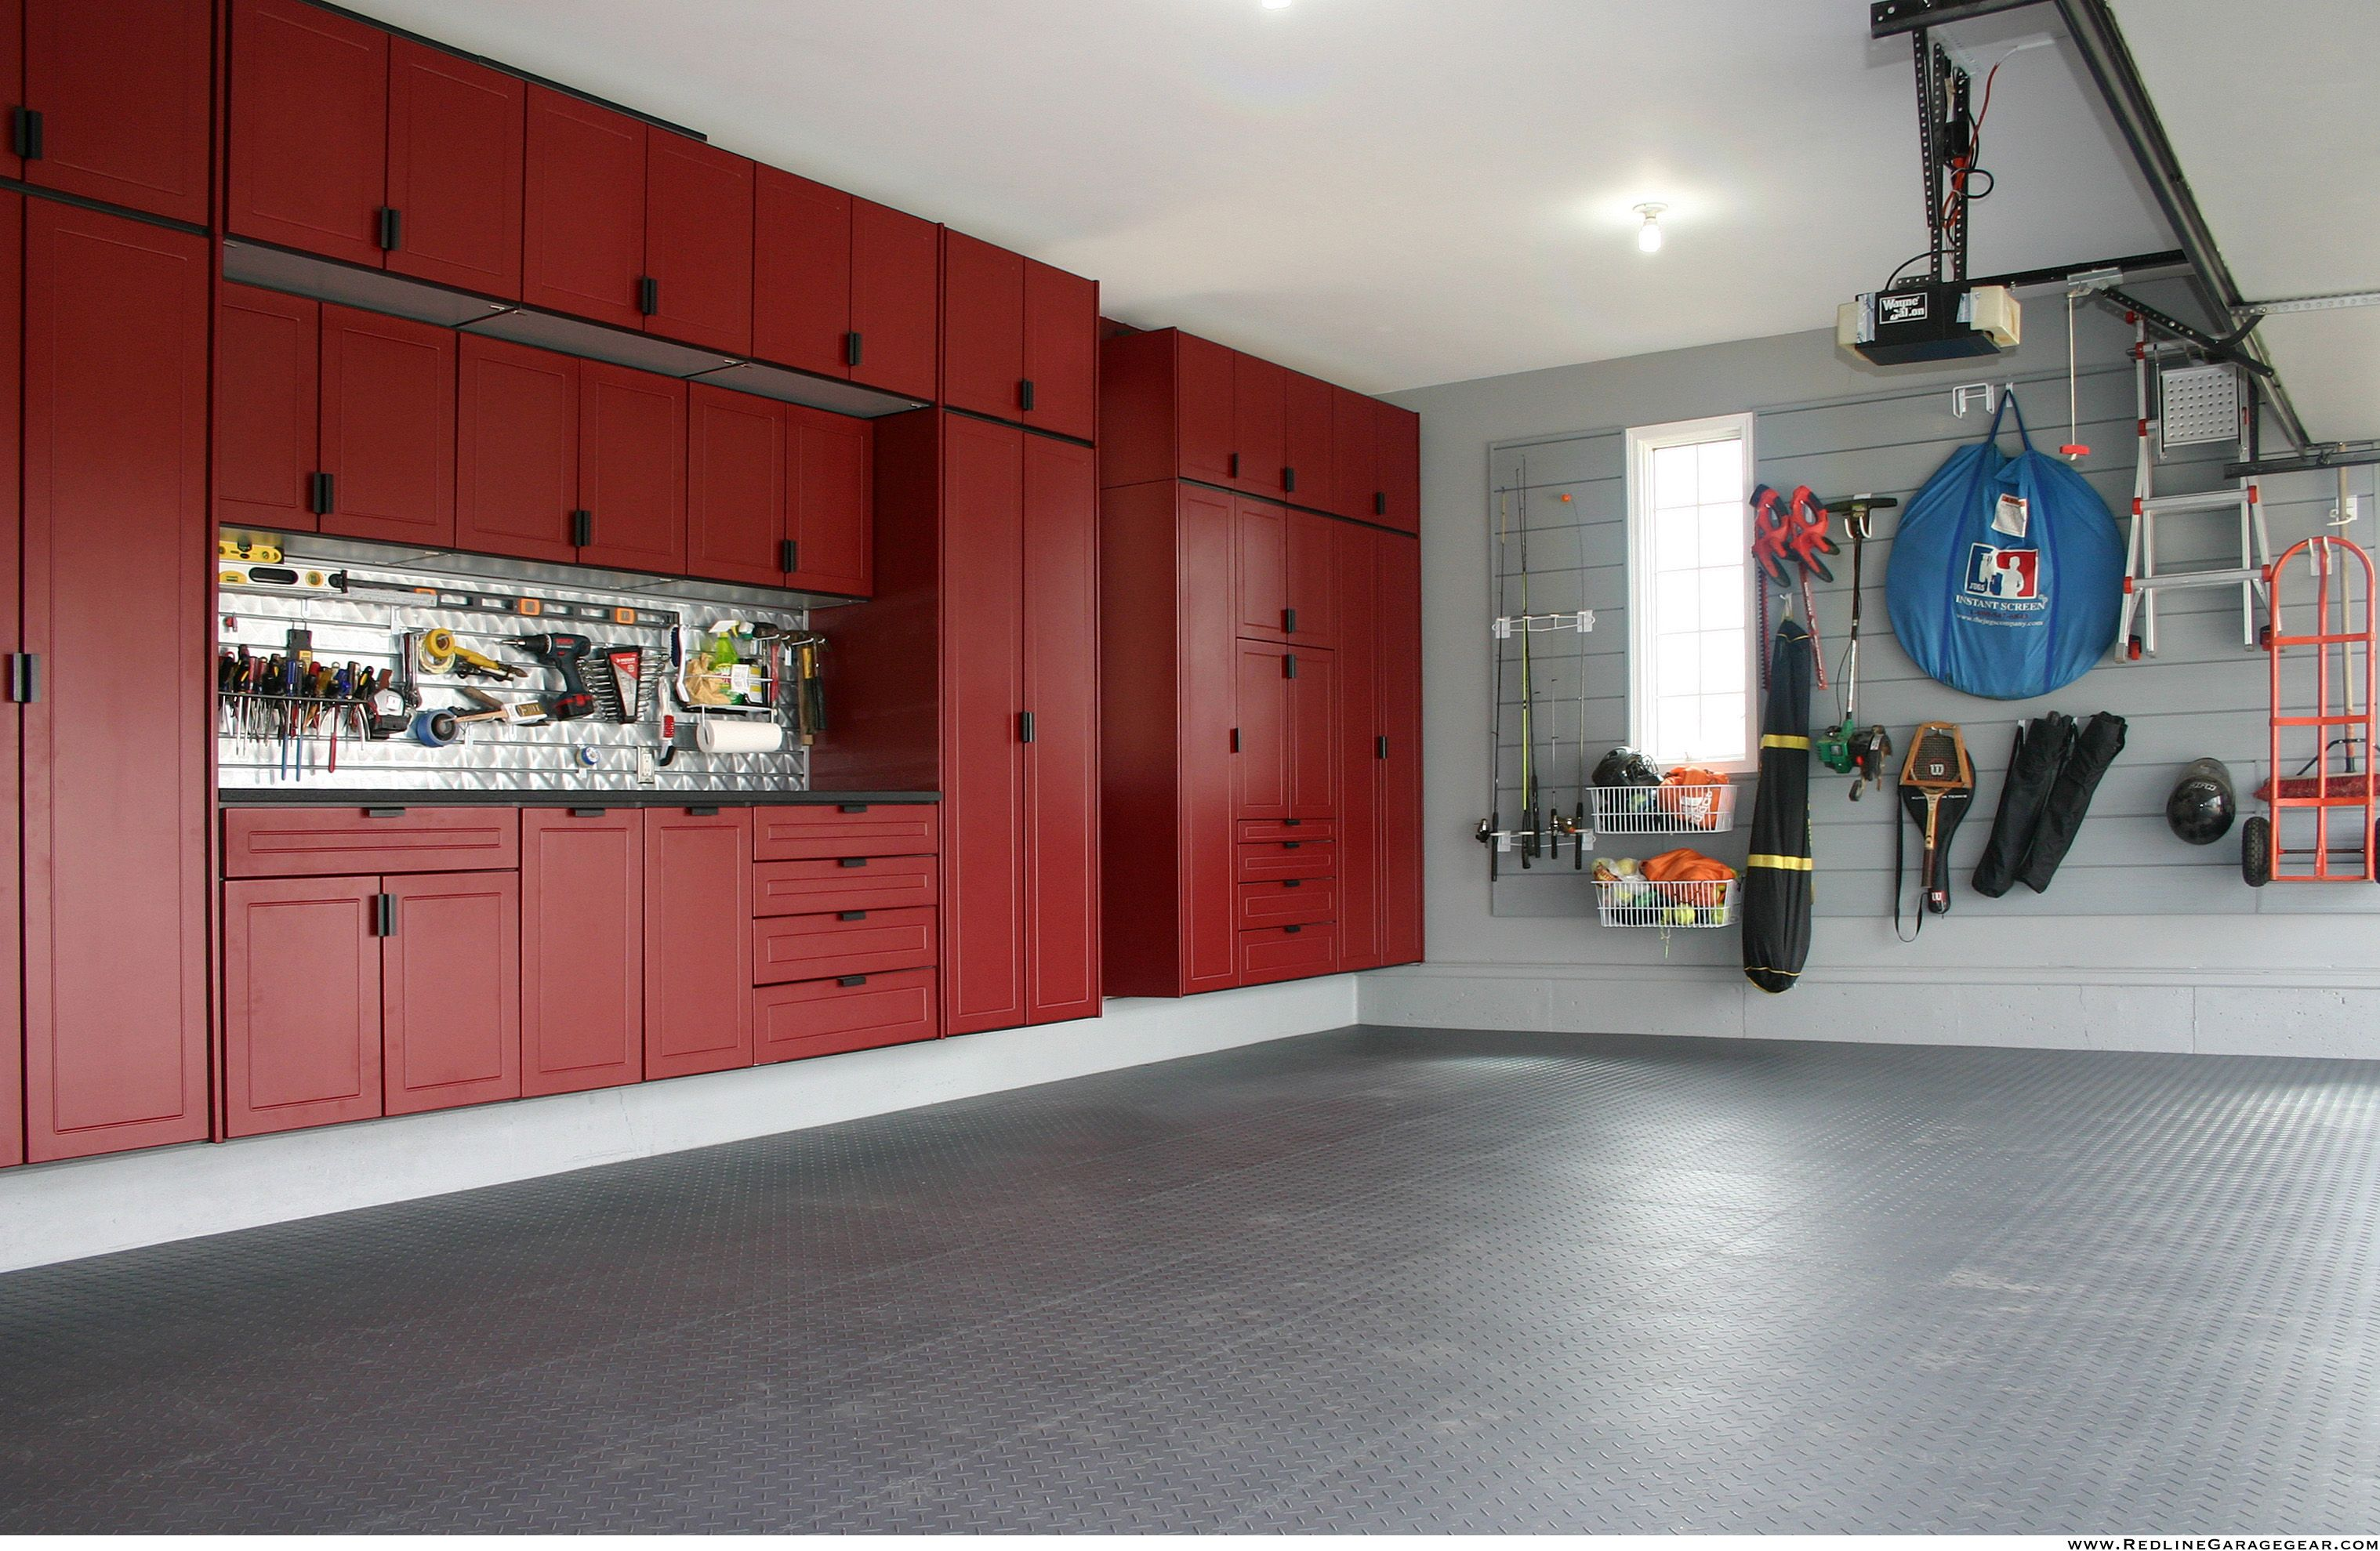 17 Best images about Garage Storage   Finishing on Pinterest   Carport  plans  Cabinets and Search. 17 Best images about Garage Storage   Finishing on Pinterest